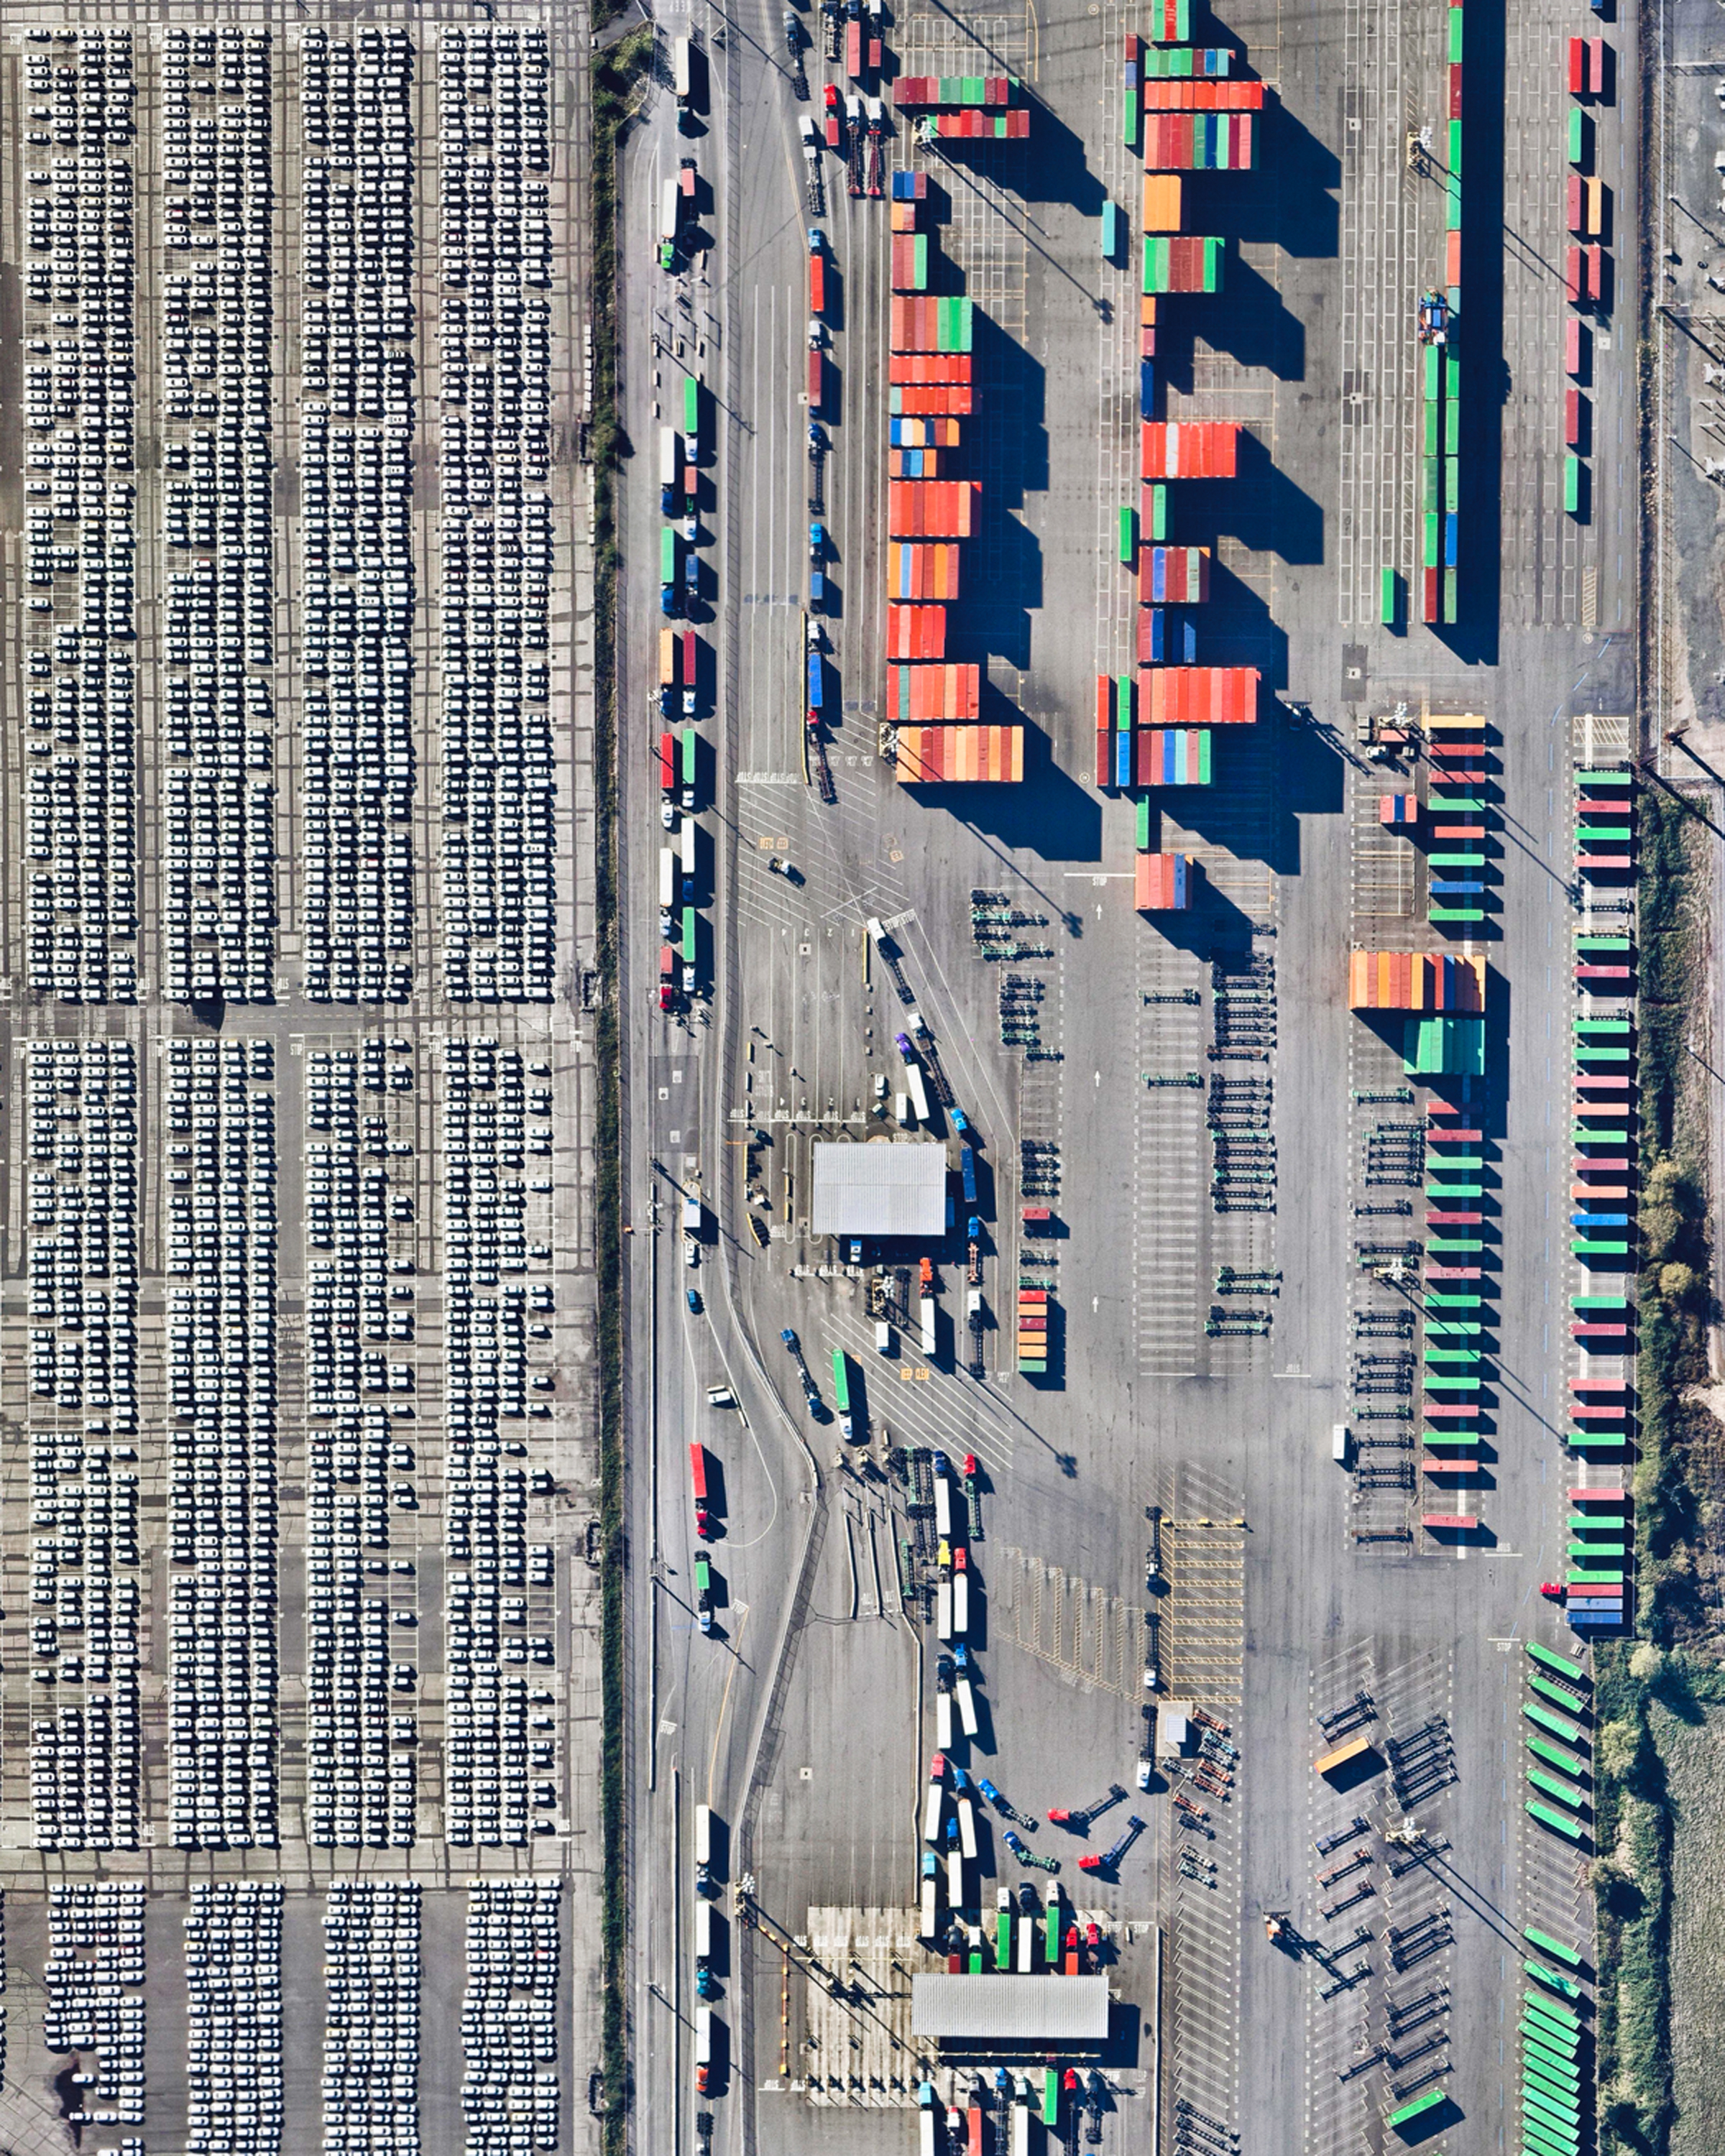 """The Pierce County Container Terminal is part of the Port of Tacoma, located in Washington State. The 140-acre (56.7 hectare) facility has two berths totaling 2,087 feet (636 m) in length and seven cranes. Every year, the Port of Tacoma handles between 9 and 13 million tons of cargo and more than $25 billion of commerce.  47°15'14.2""""N, 122°22'11.2""""W  Source imagery: Nearmap"""